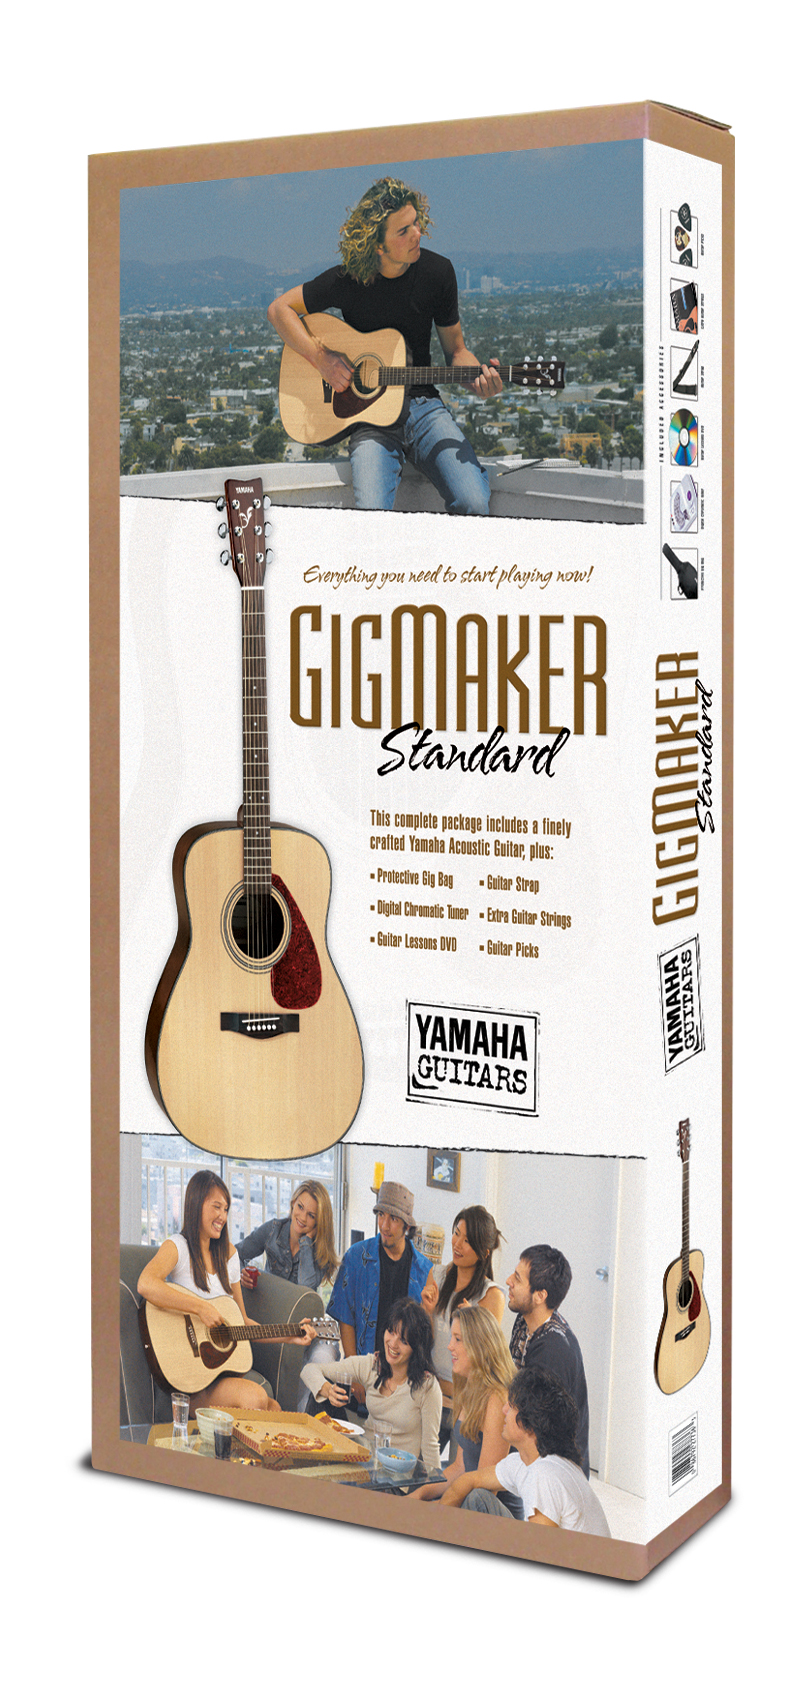 GIGMAKER STANDARD F325 ACOUSTIC GUITAR PACKAGE